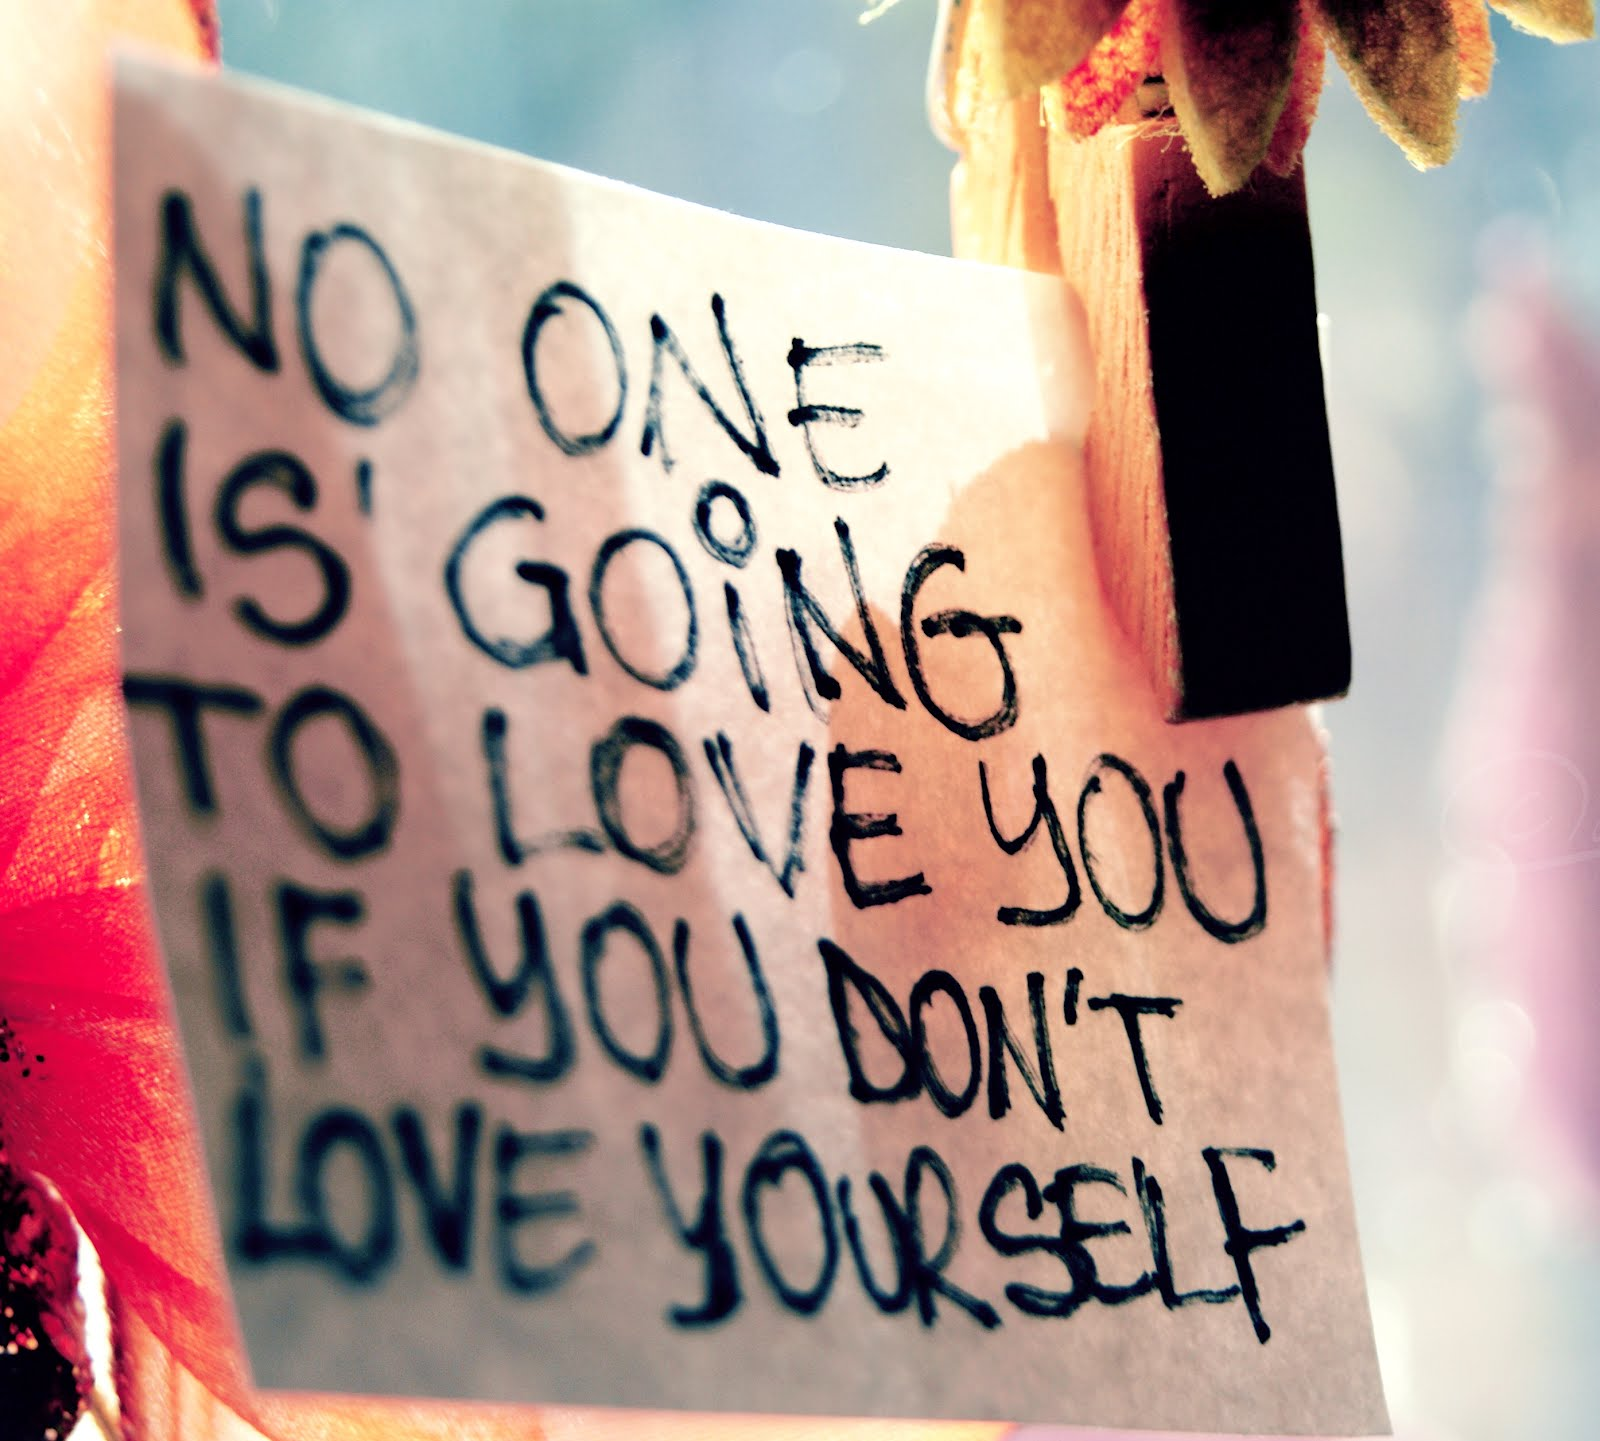 Learning To Love Yourself Quotes My Interesting Talks With Friends How To Love Yourself Quotes